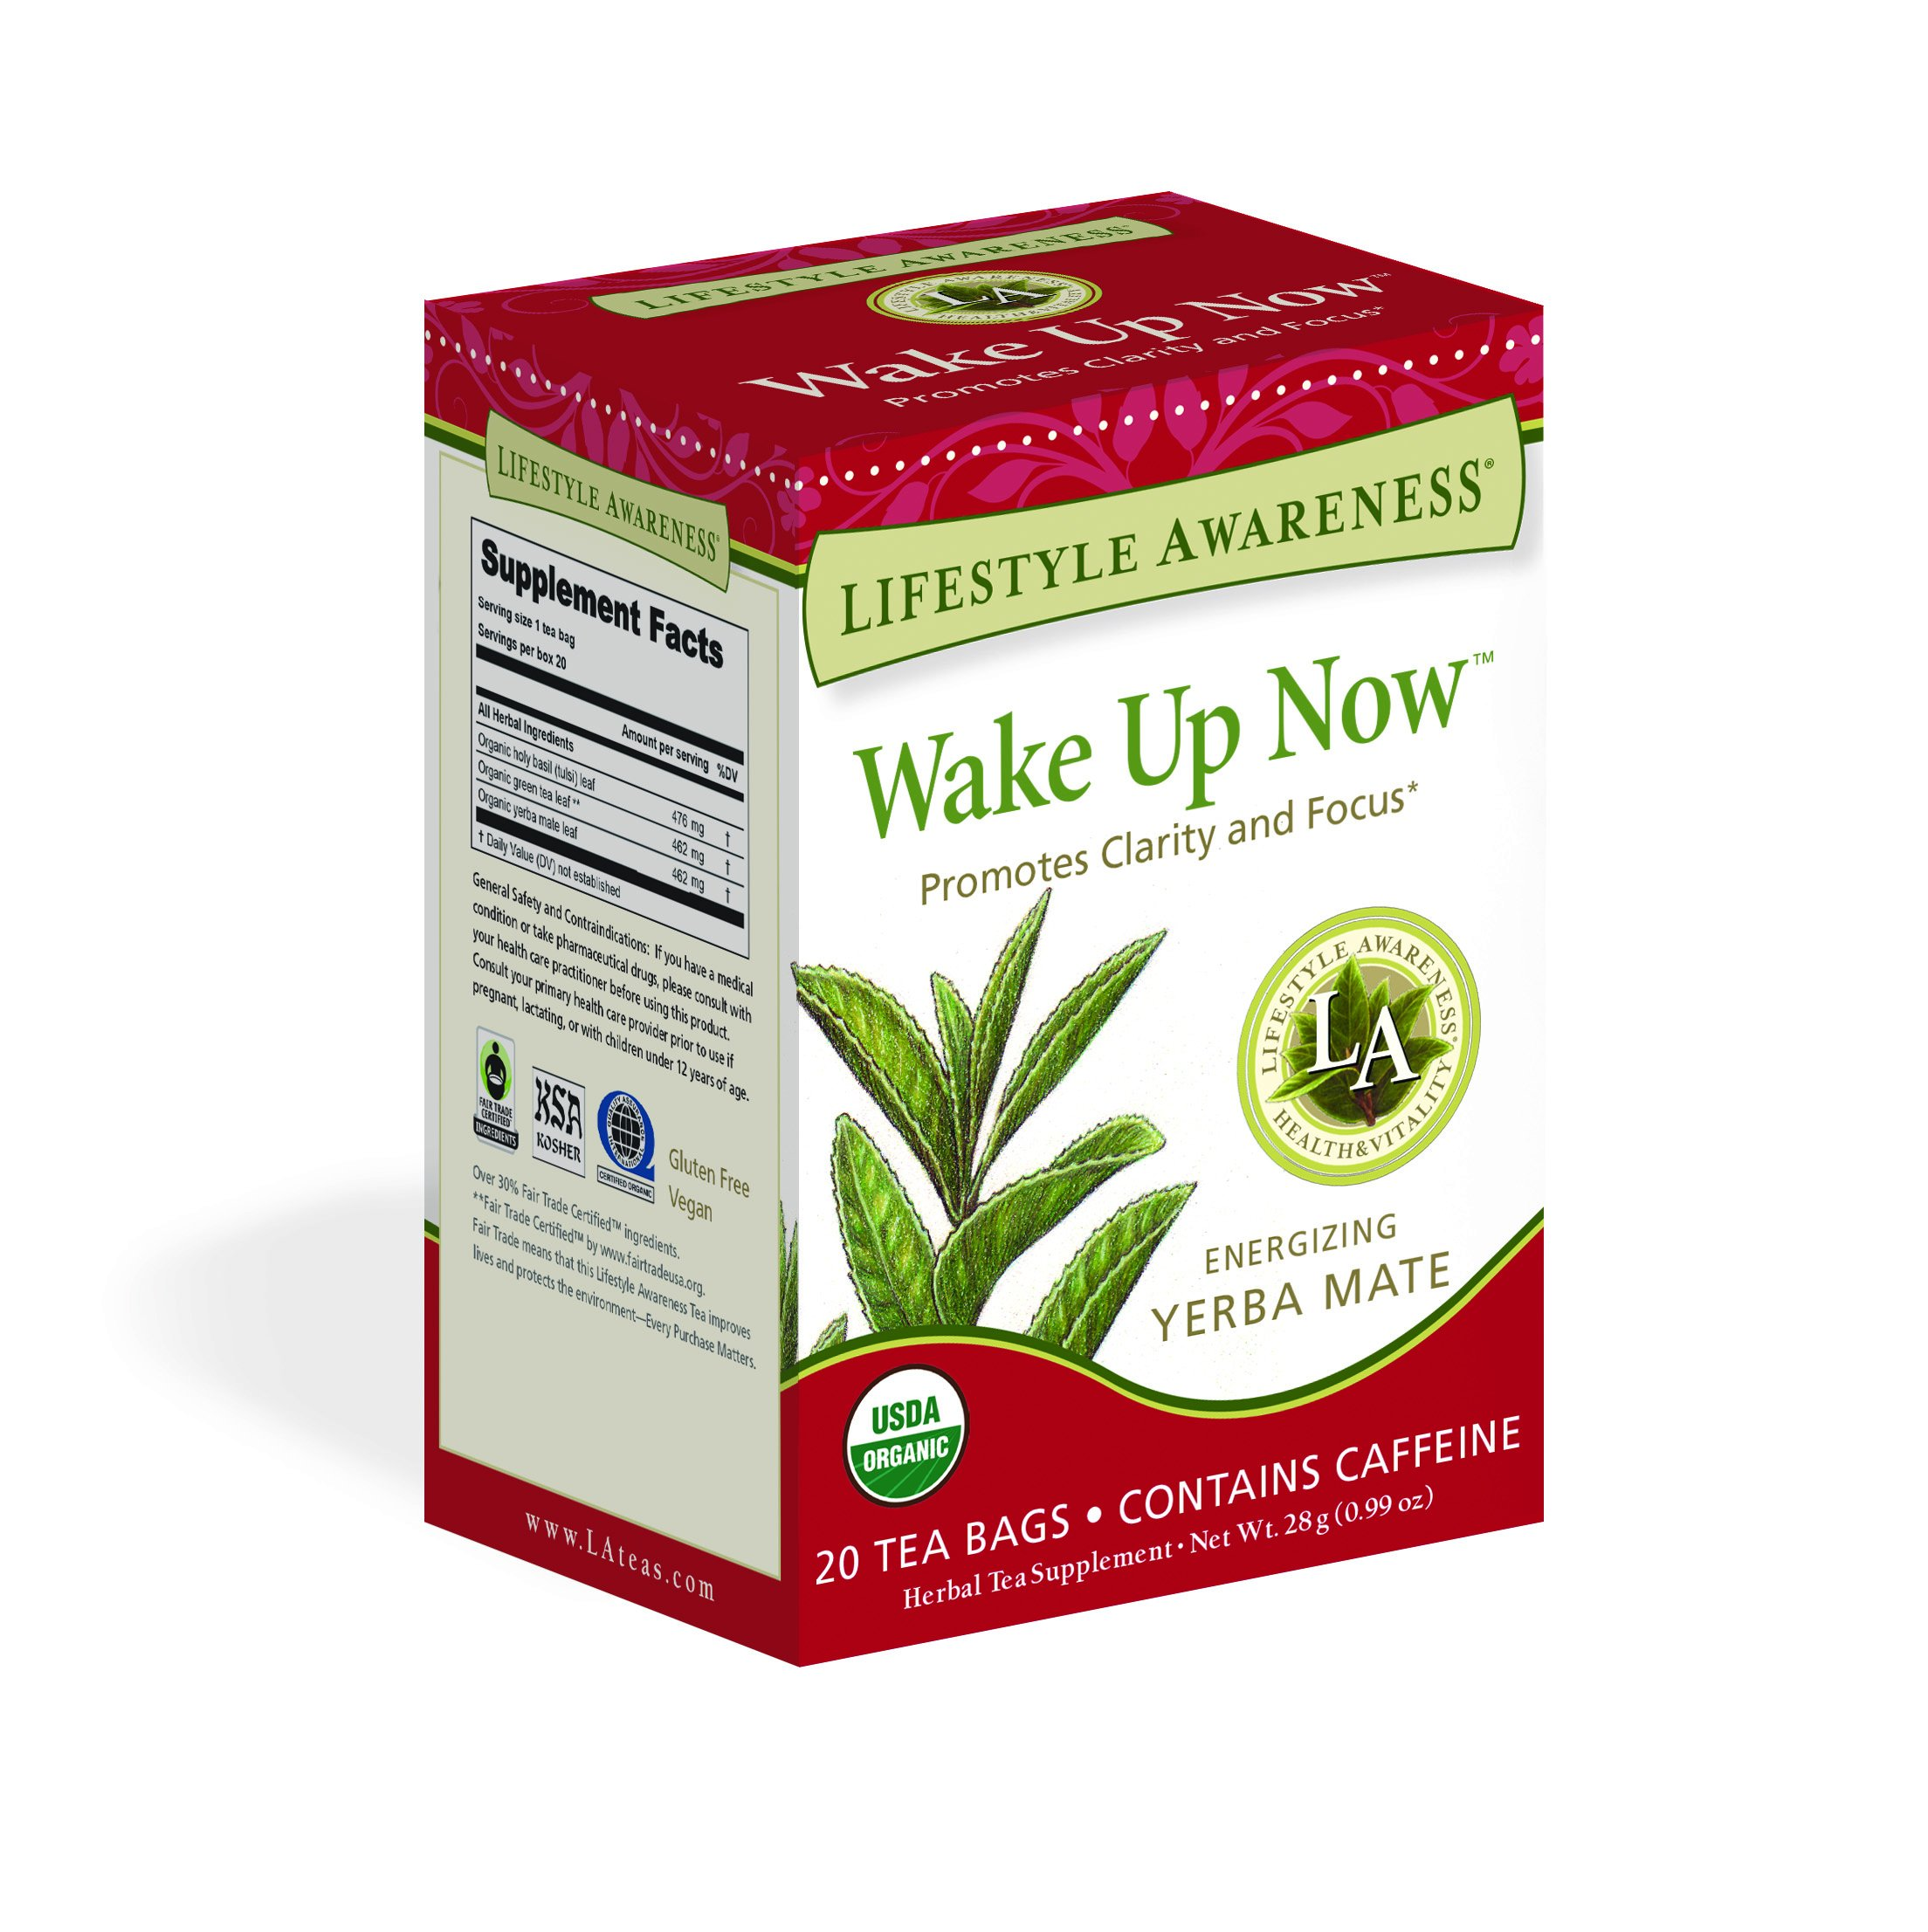 Lifestyle Awareness Wake Up Now Tea with Energizing Yerba Mate, Contains Caffeine, 20 Tea Bags, Pack of 6